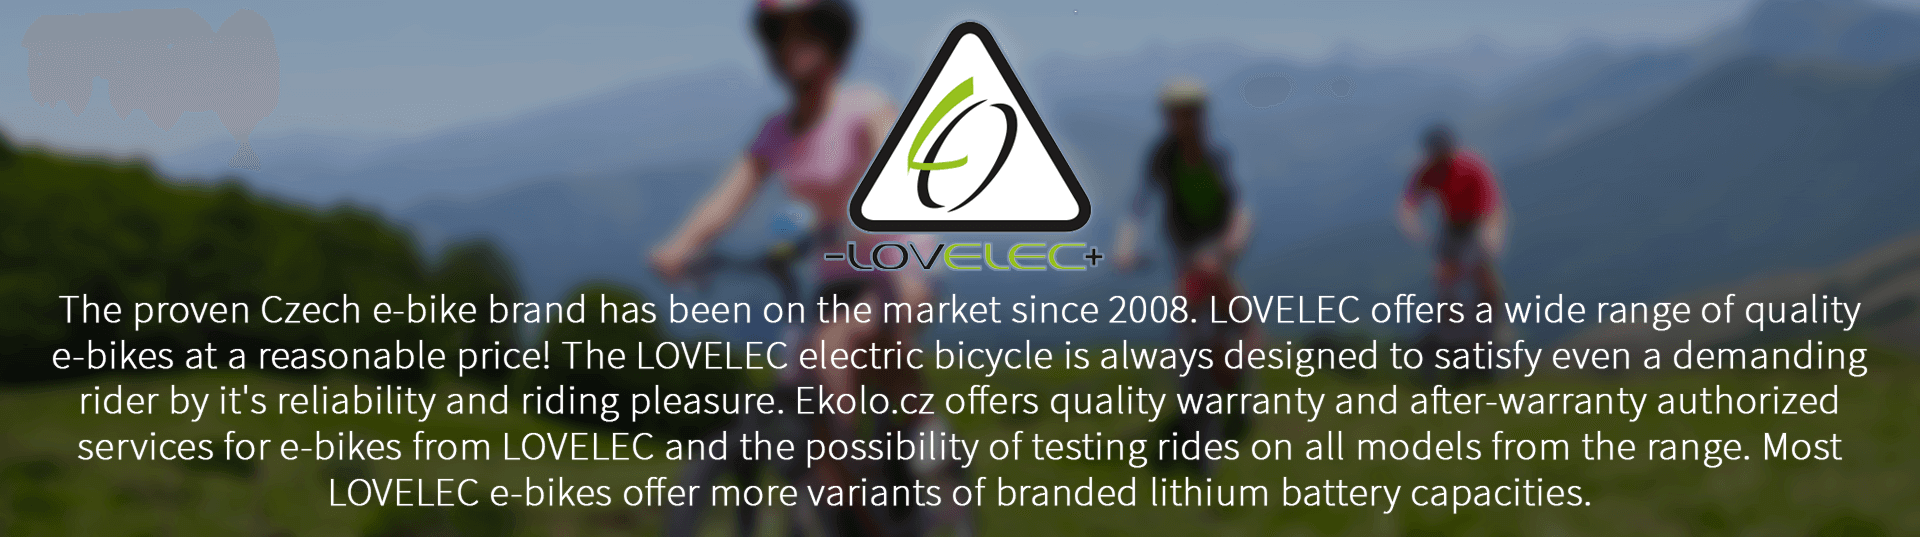 The proven Czech e-bike brand has been on the market since 2008. LOVELEC offers a wide range of quality e-bikes at a reasonable price! The LOVELEC electric bicycle is always designed to satisfy even a demanding rider by it's reliability and riding pleasure. Ekolo.cz offers quality warranty and after-warranty authorized services for e-bikes from LOVELEC and the possibility of testing rides on all models from the range. Most LOVELEC e-bikes offer more variants of branded lithium battery capacities.